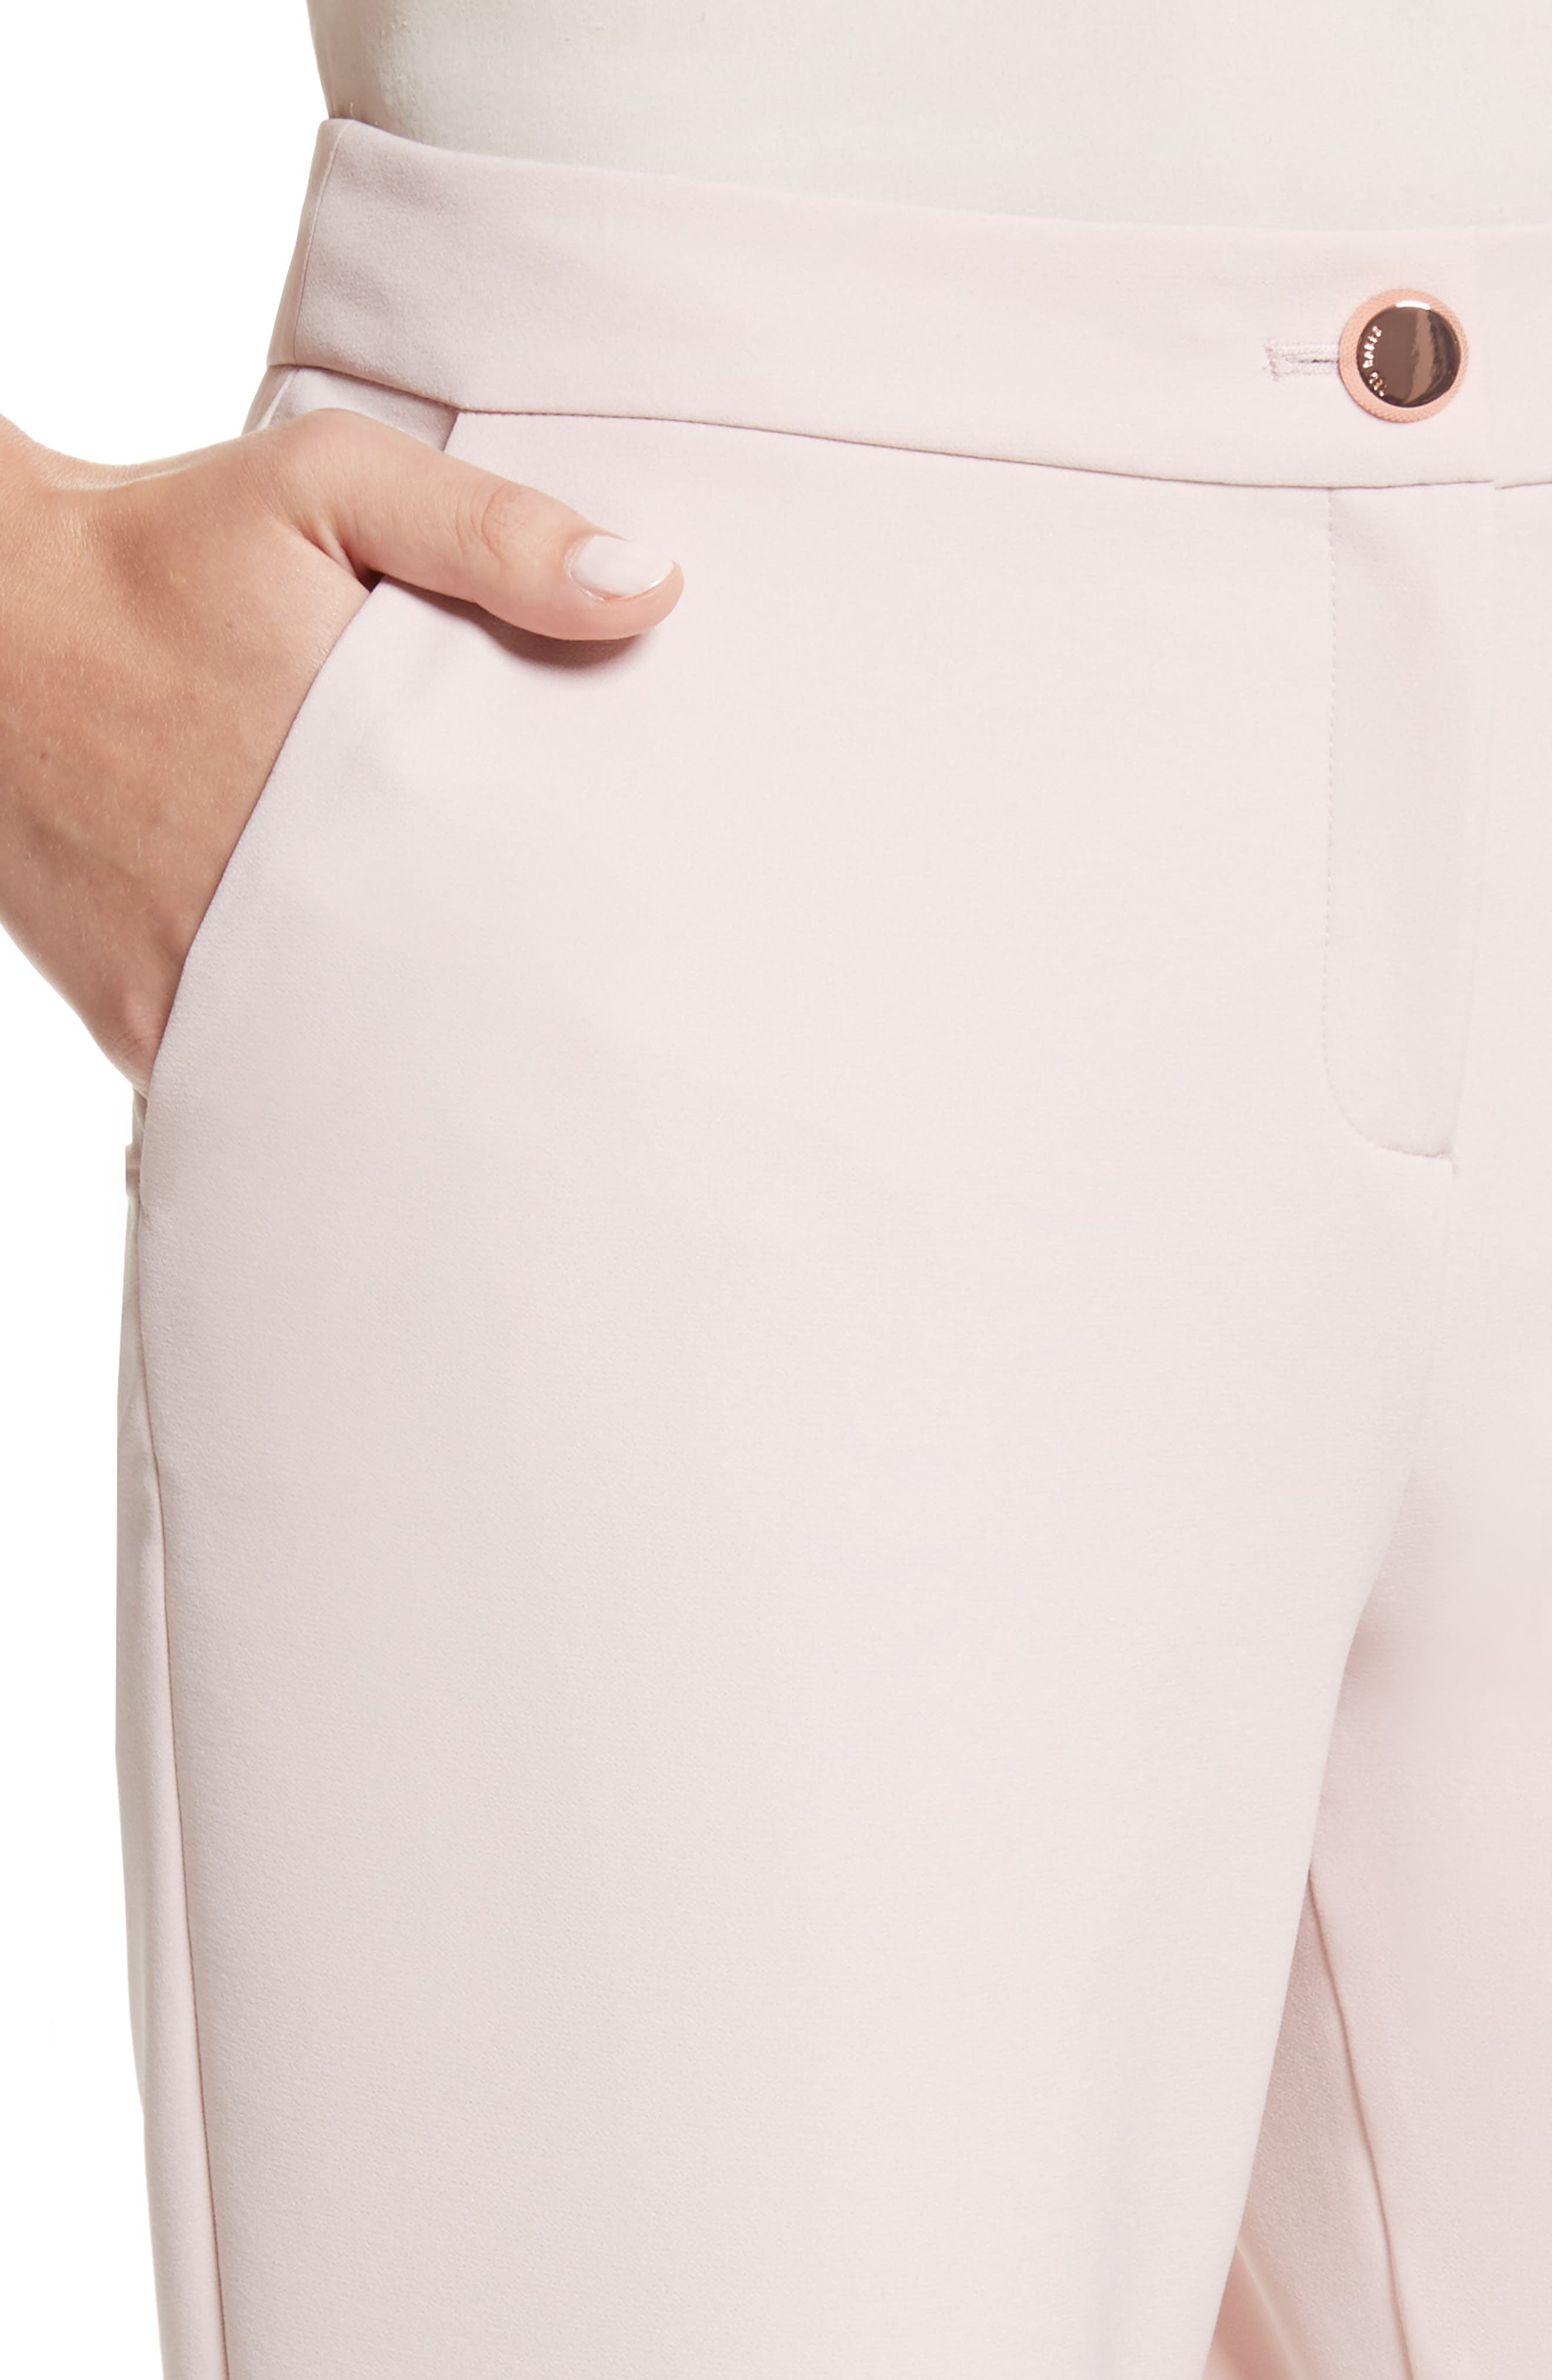 Suria Tailored Ankle Grazer Trousers,                             Alternate thumbnail 4, color,                             Pale Pink